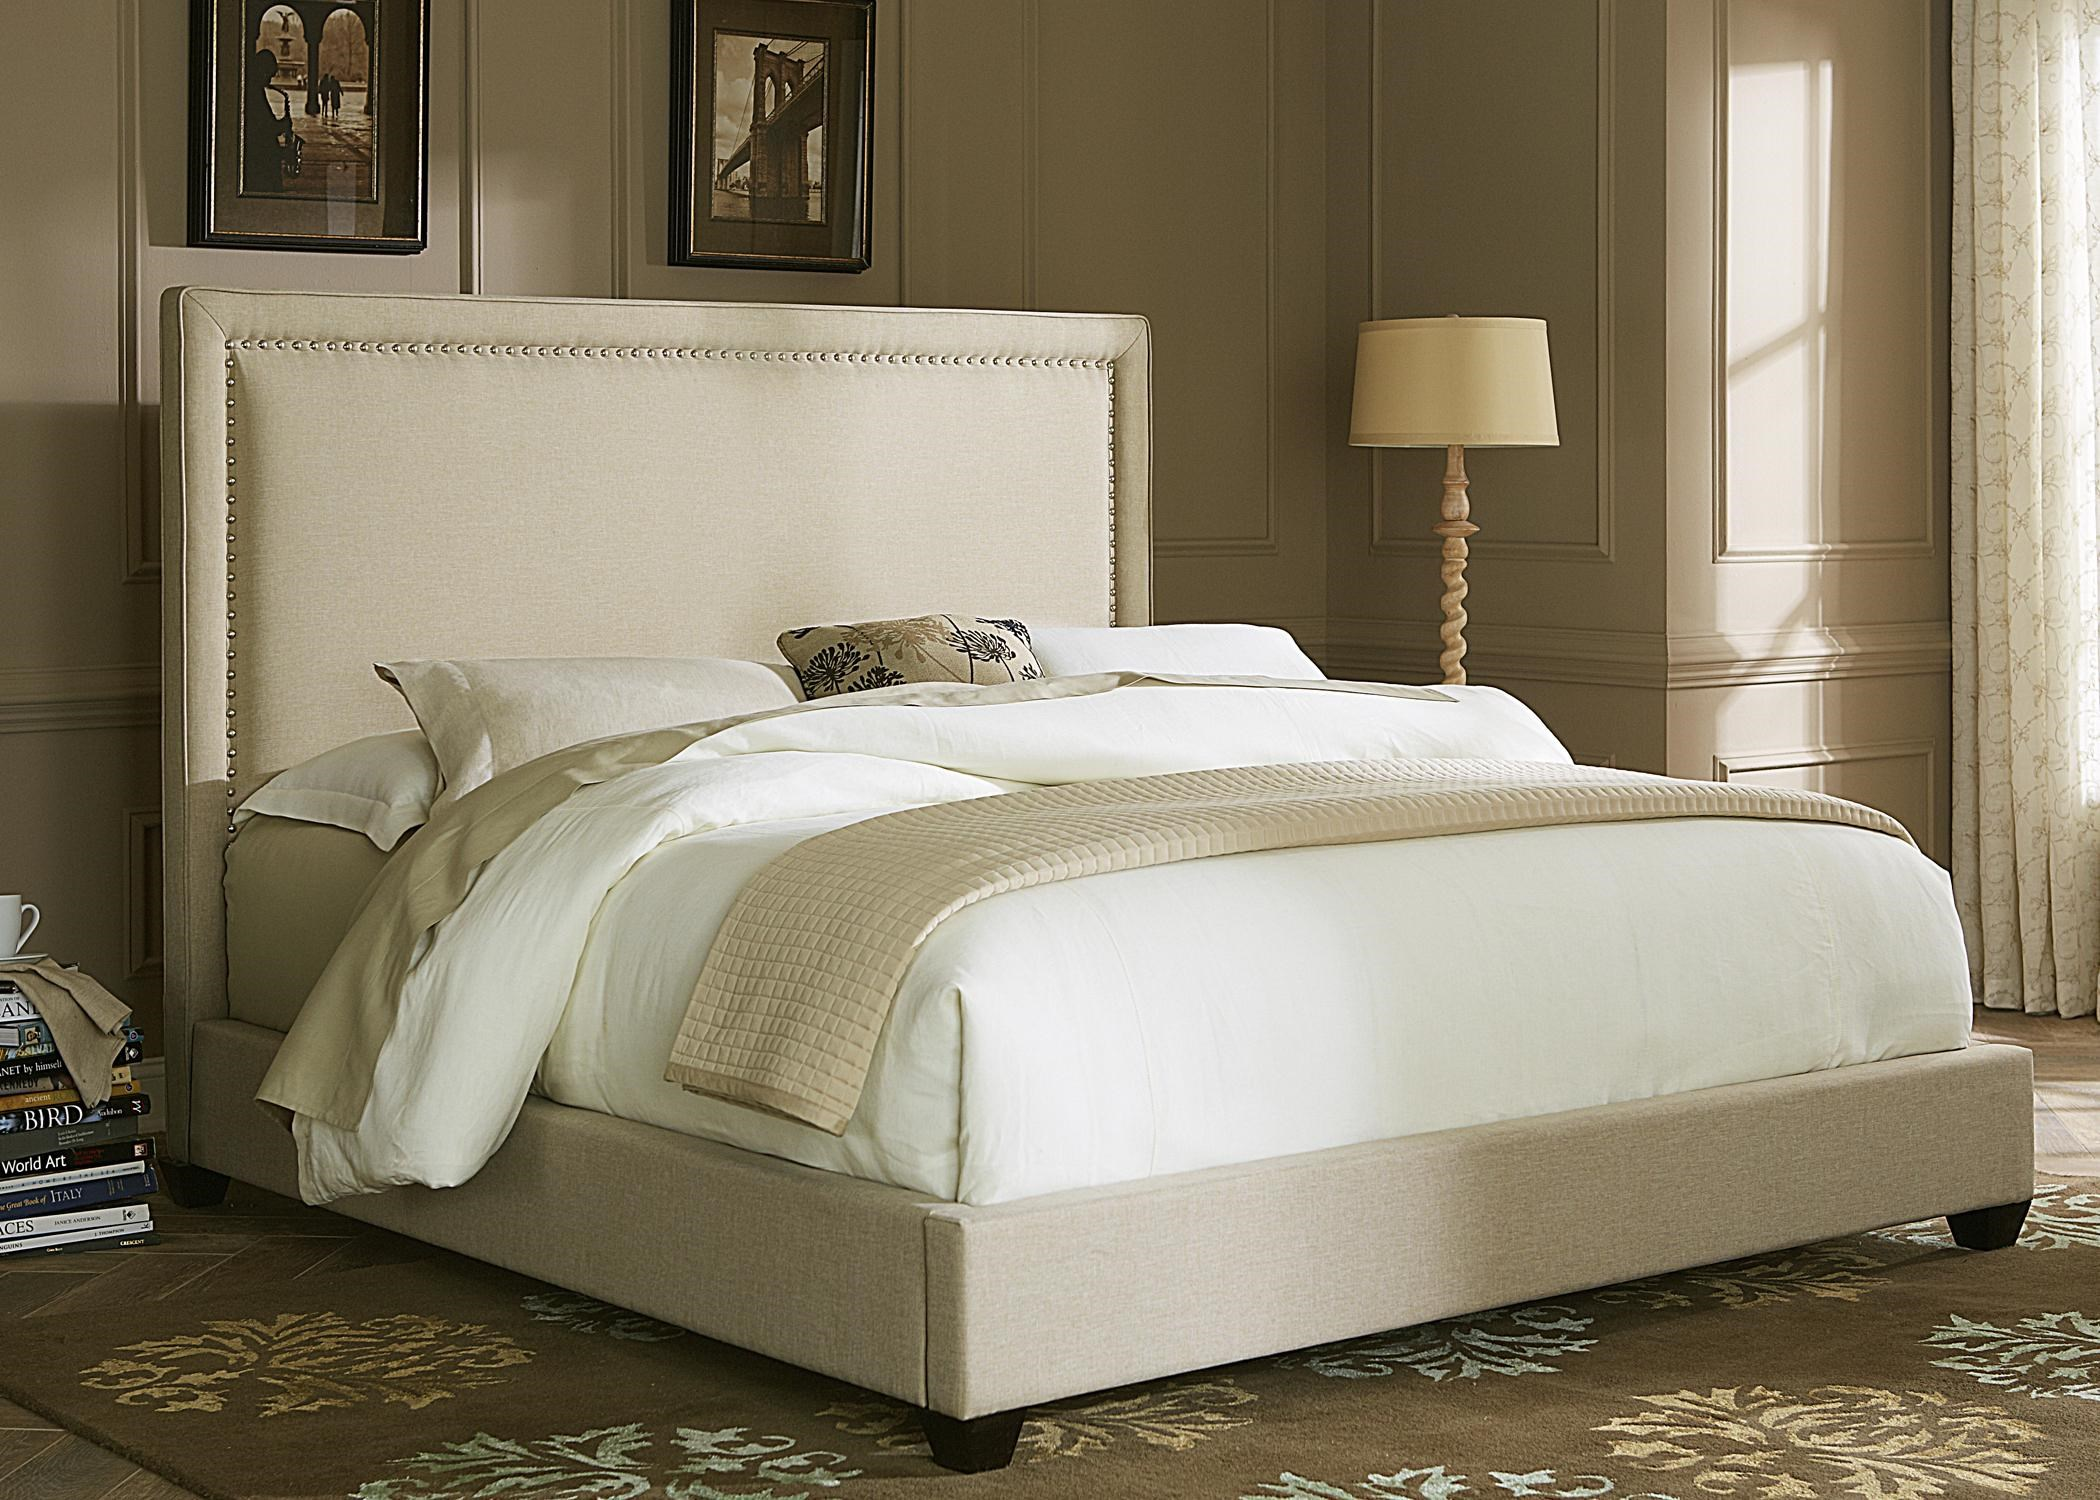 Liberty Furniture Upholstered Beds Queen Upholstered Panel